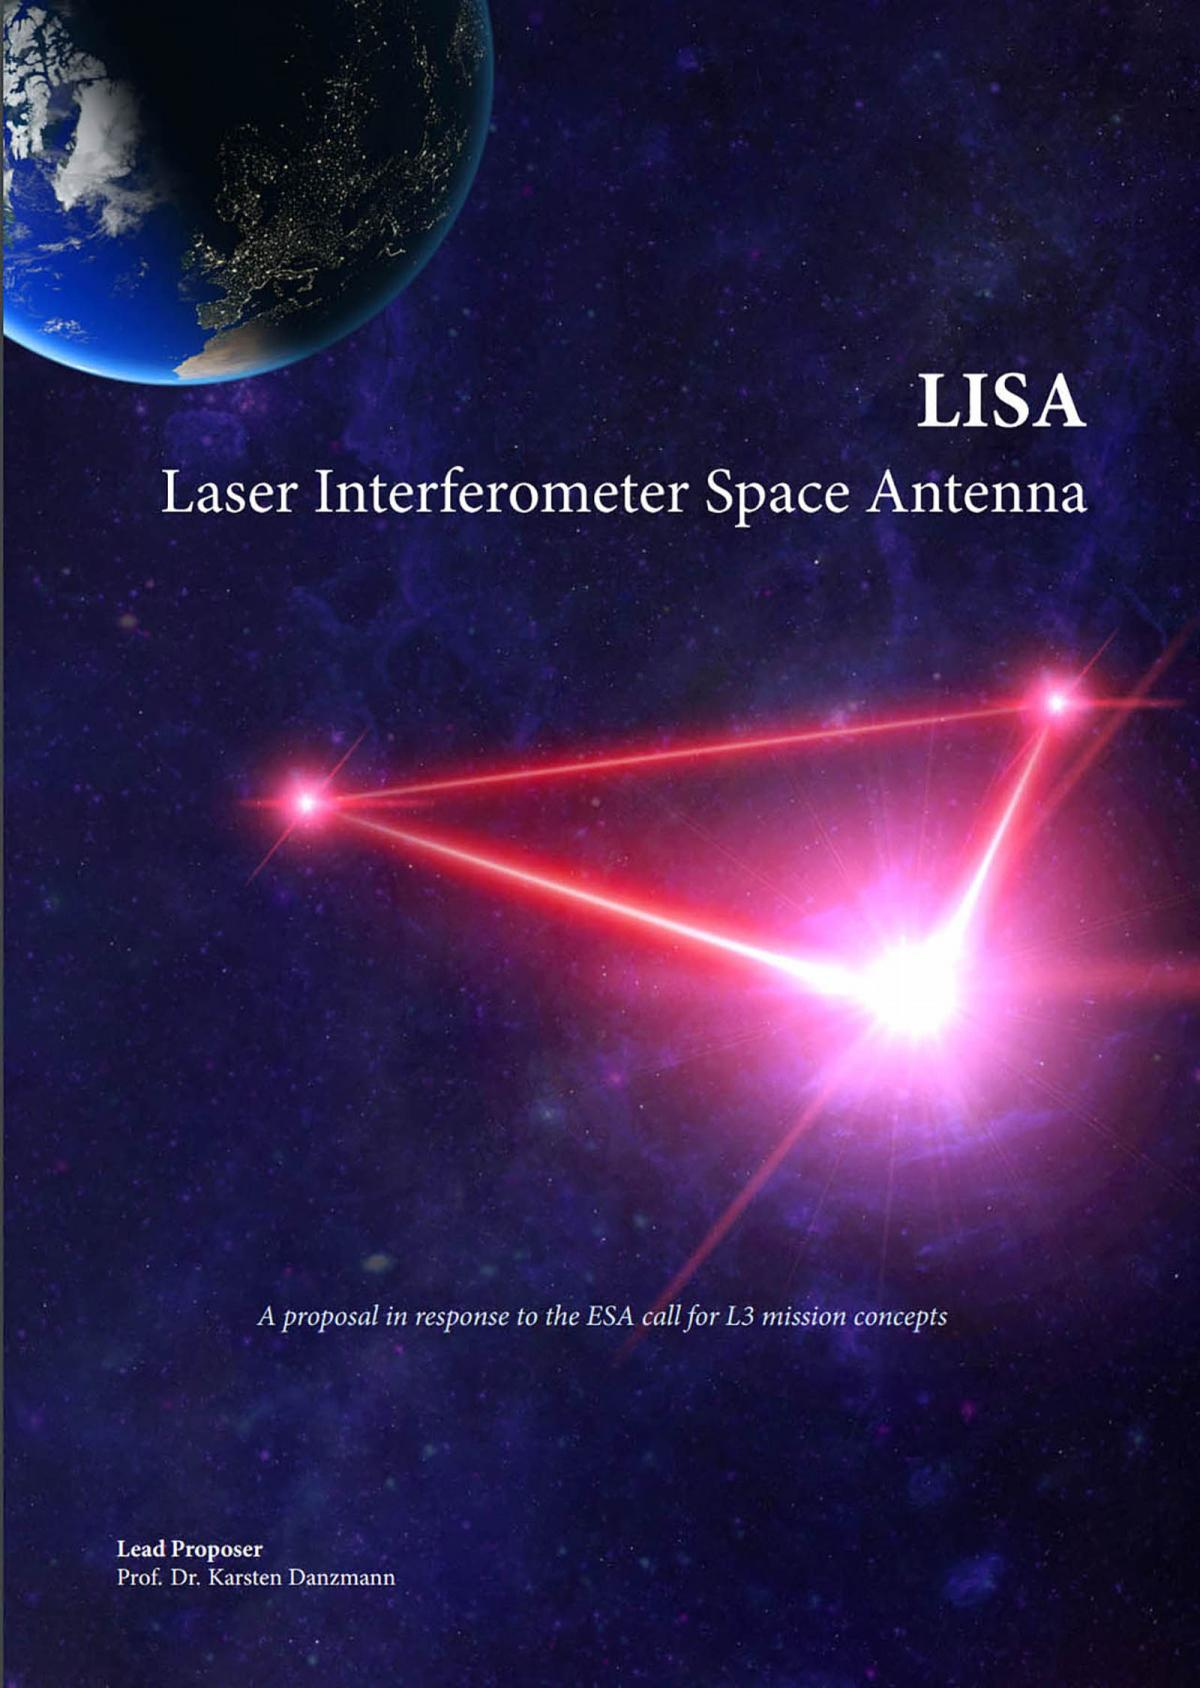 lisa_l3_proposal_cover_jan_2017_0